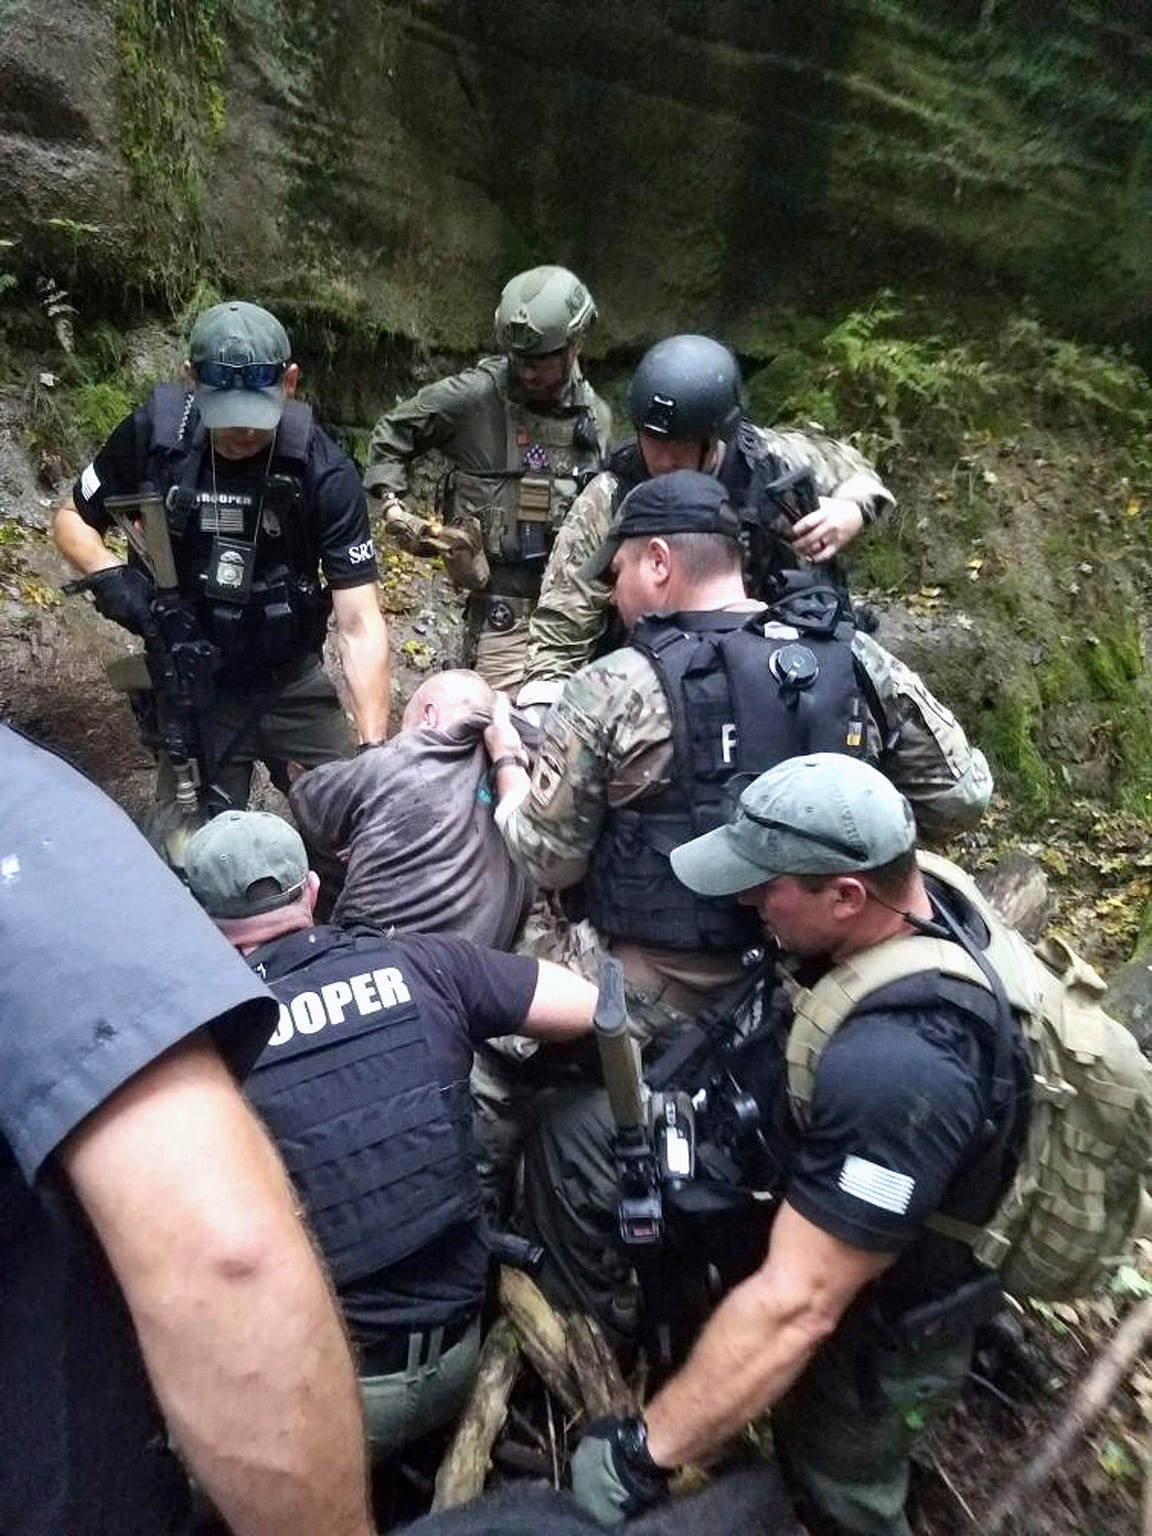 In this photo released by the Ohio State Highway Patrol, Shawn Christy is apprehended in Mifflin Township, near Columbus, Ohio Friday Sept. 21, 2018. The U.S. Marshals Service says Christy, a Pennsylvania man accused of threatening President Donald Trump and law enforcement officials, has been arrested in Ohio. They say Shawn Richard Christy was arrested at 4:45 p.m. Friday in Mifflin Township, near Columbus, by marshals and task force members from Ohio and Pennsylvania. (Ohio State Highway Patrol via AP)